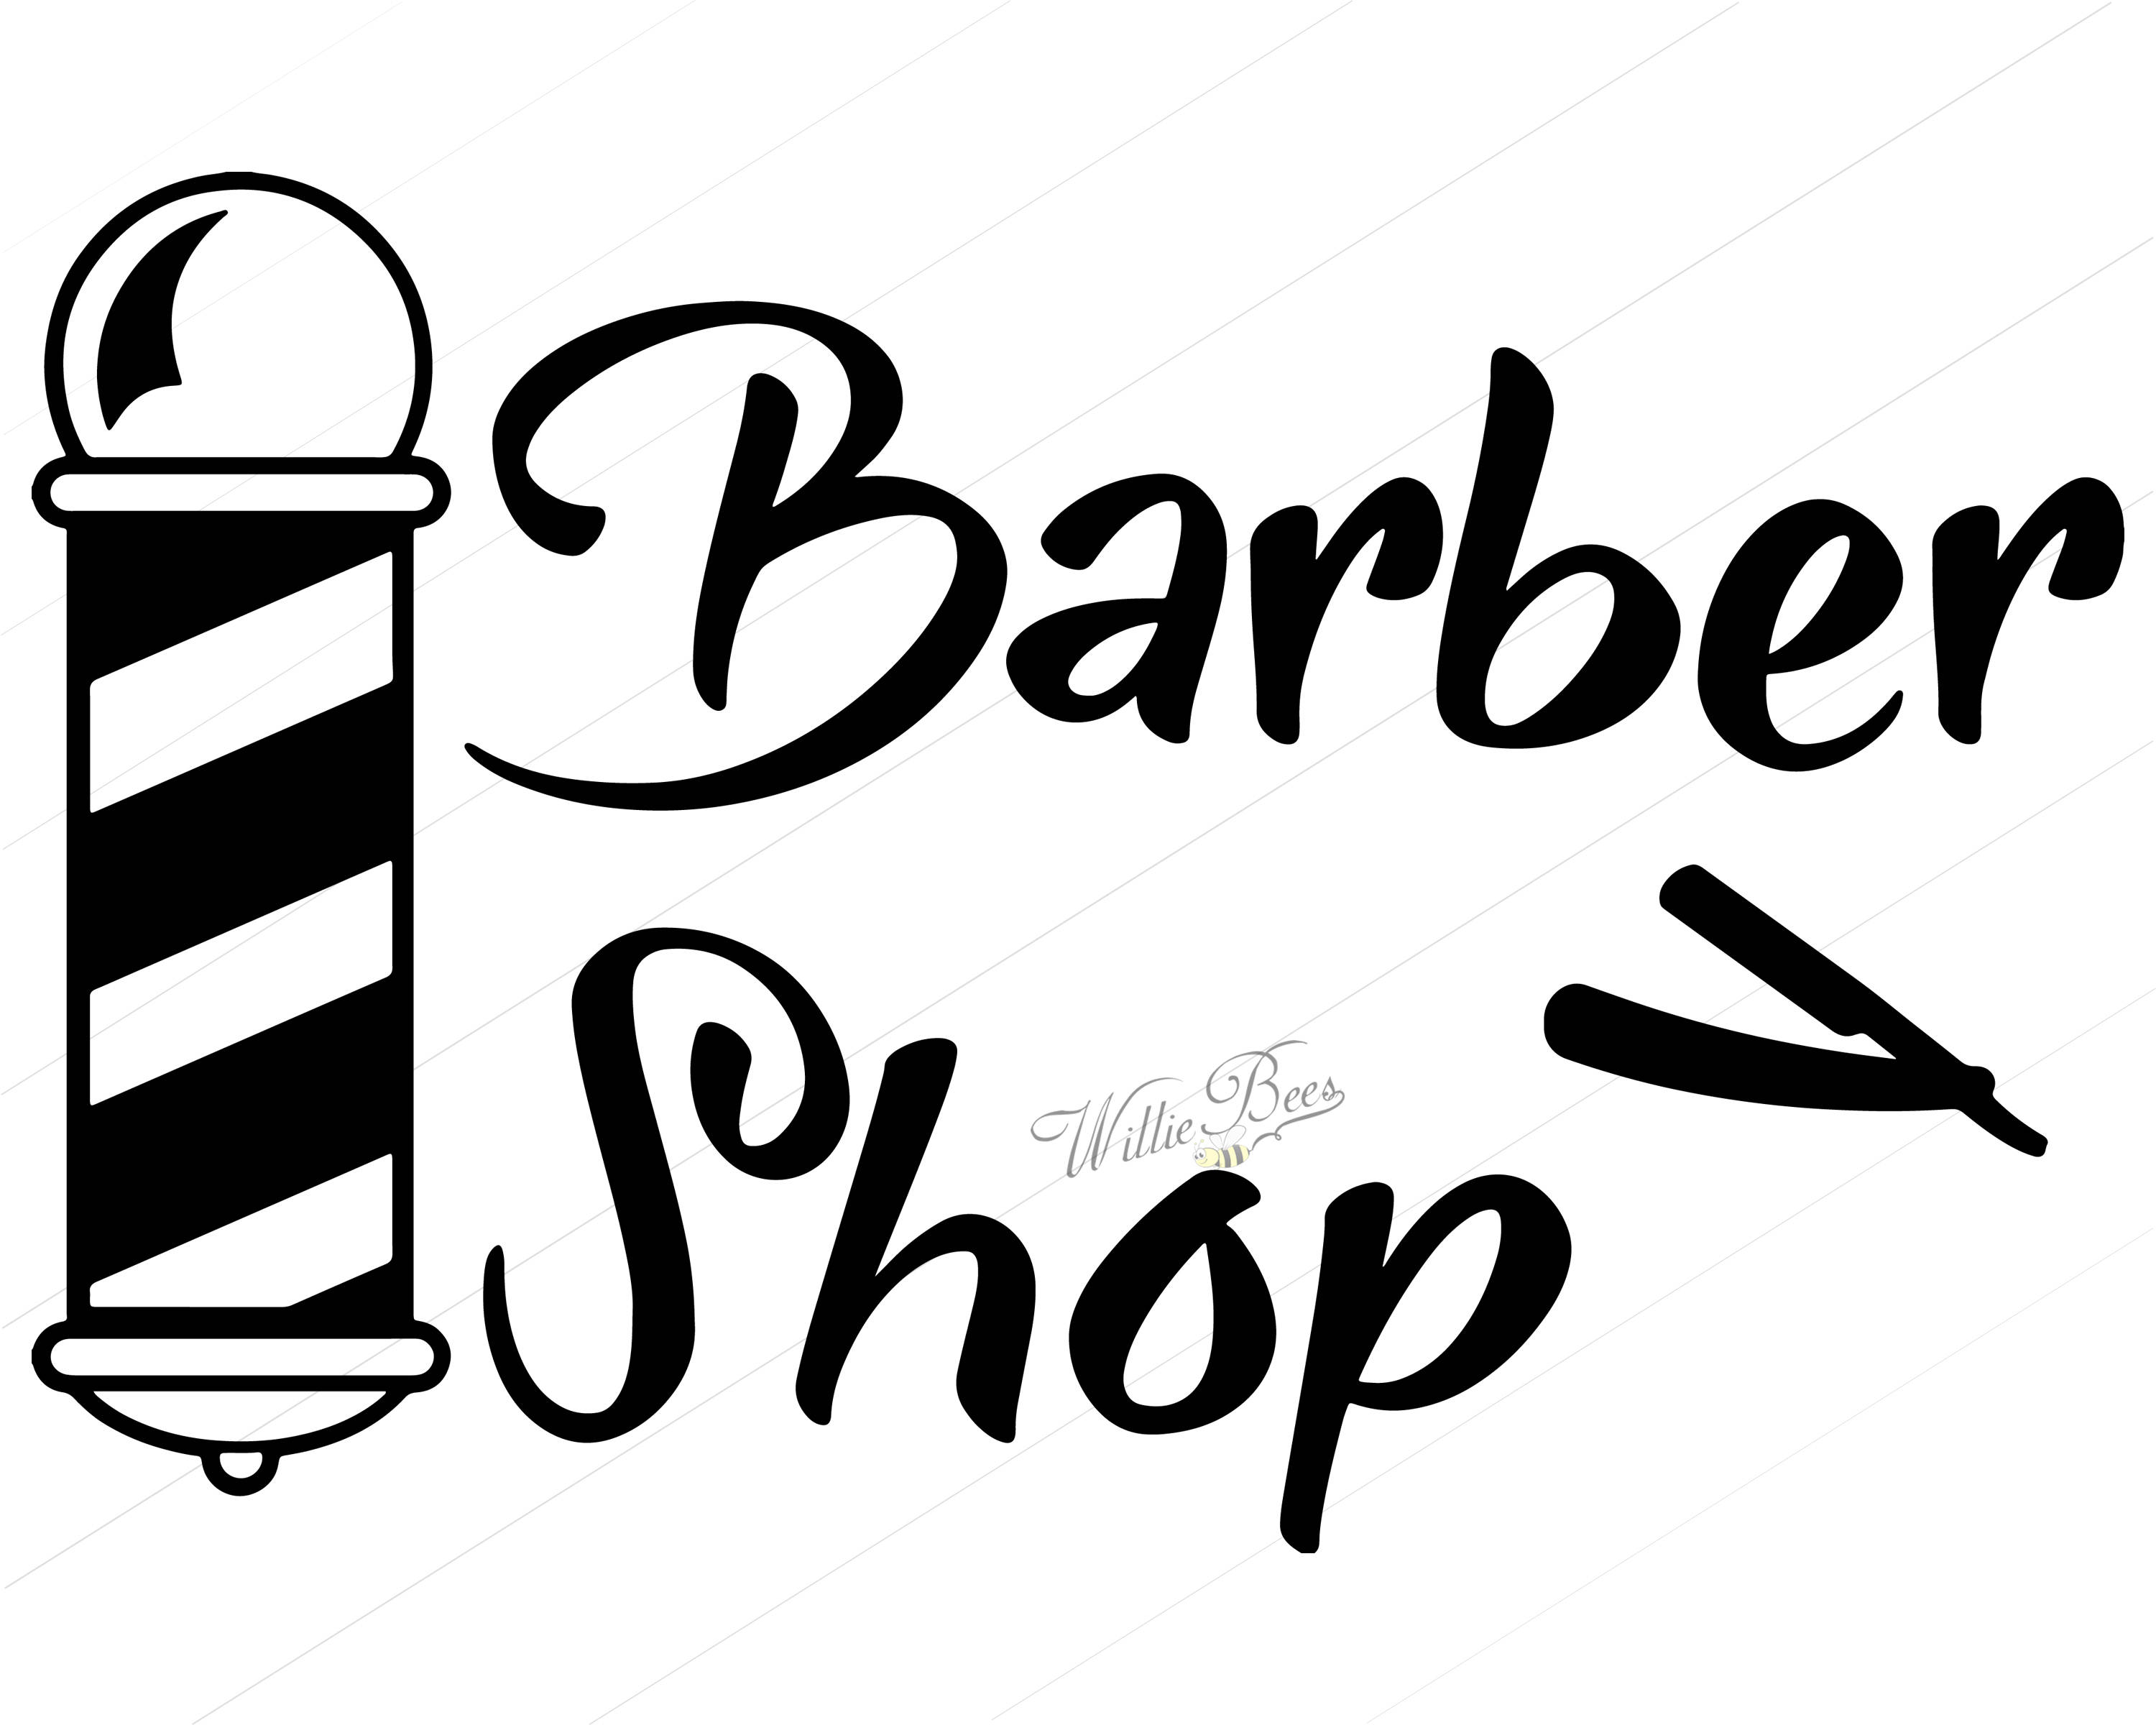 1196 Barber free clipart.